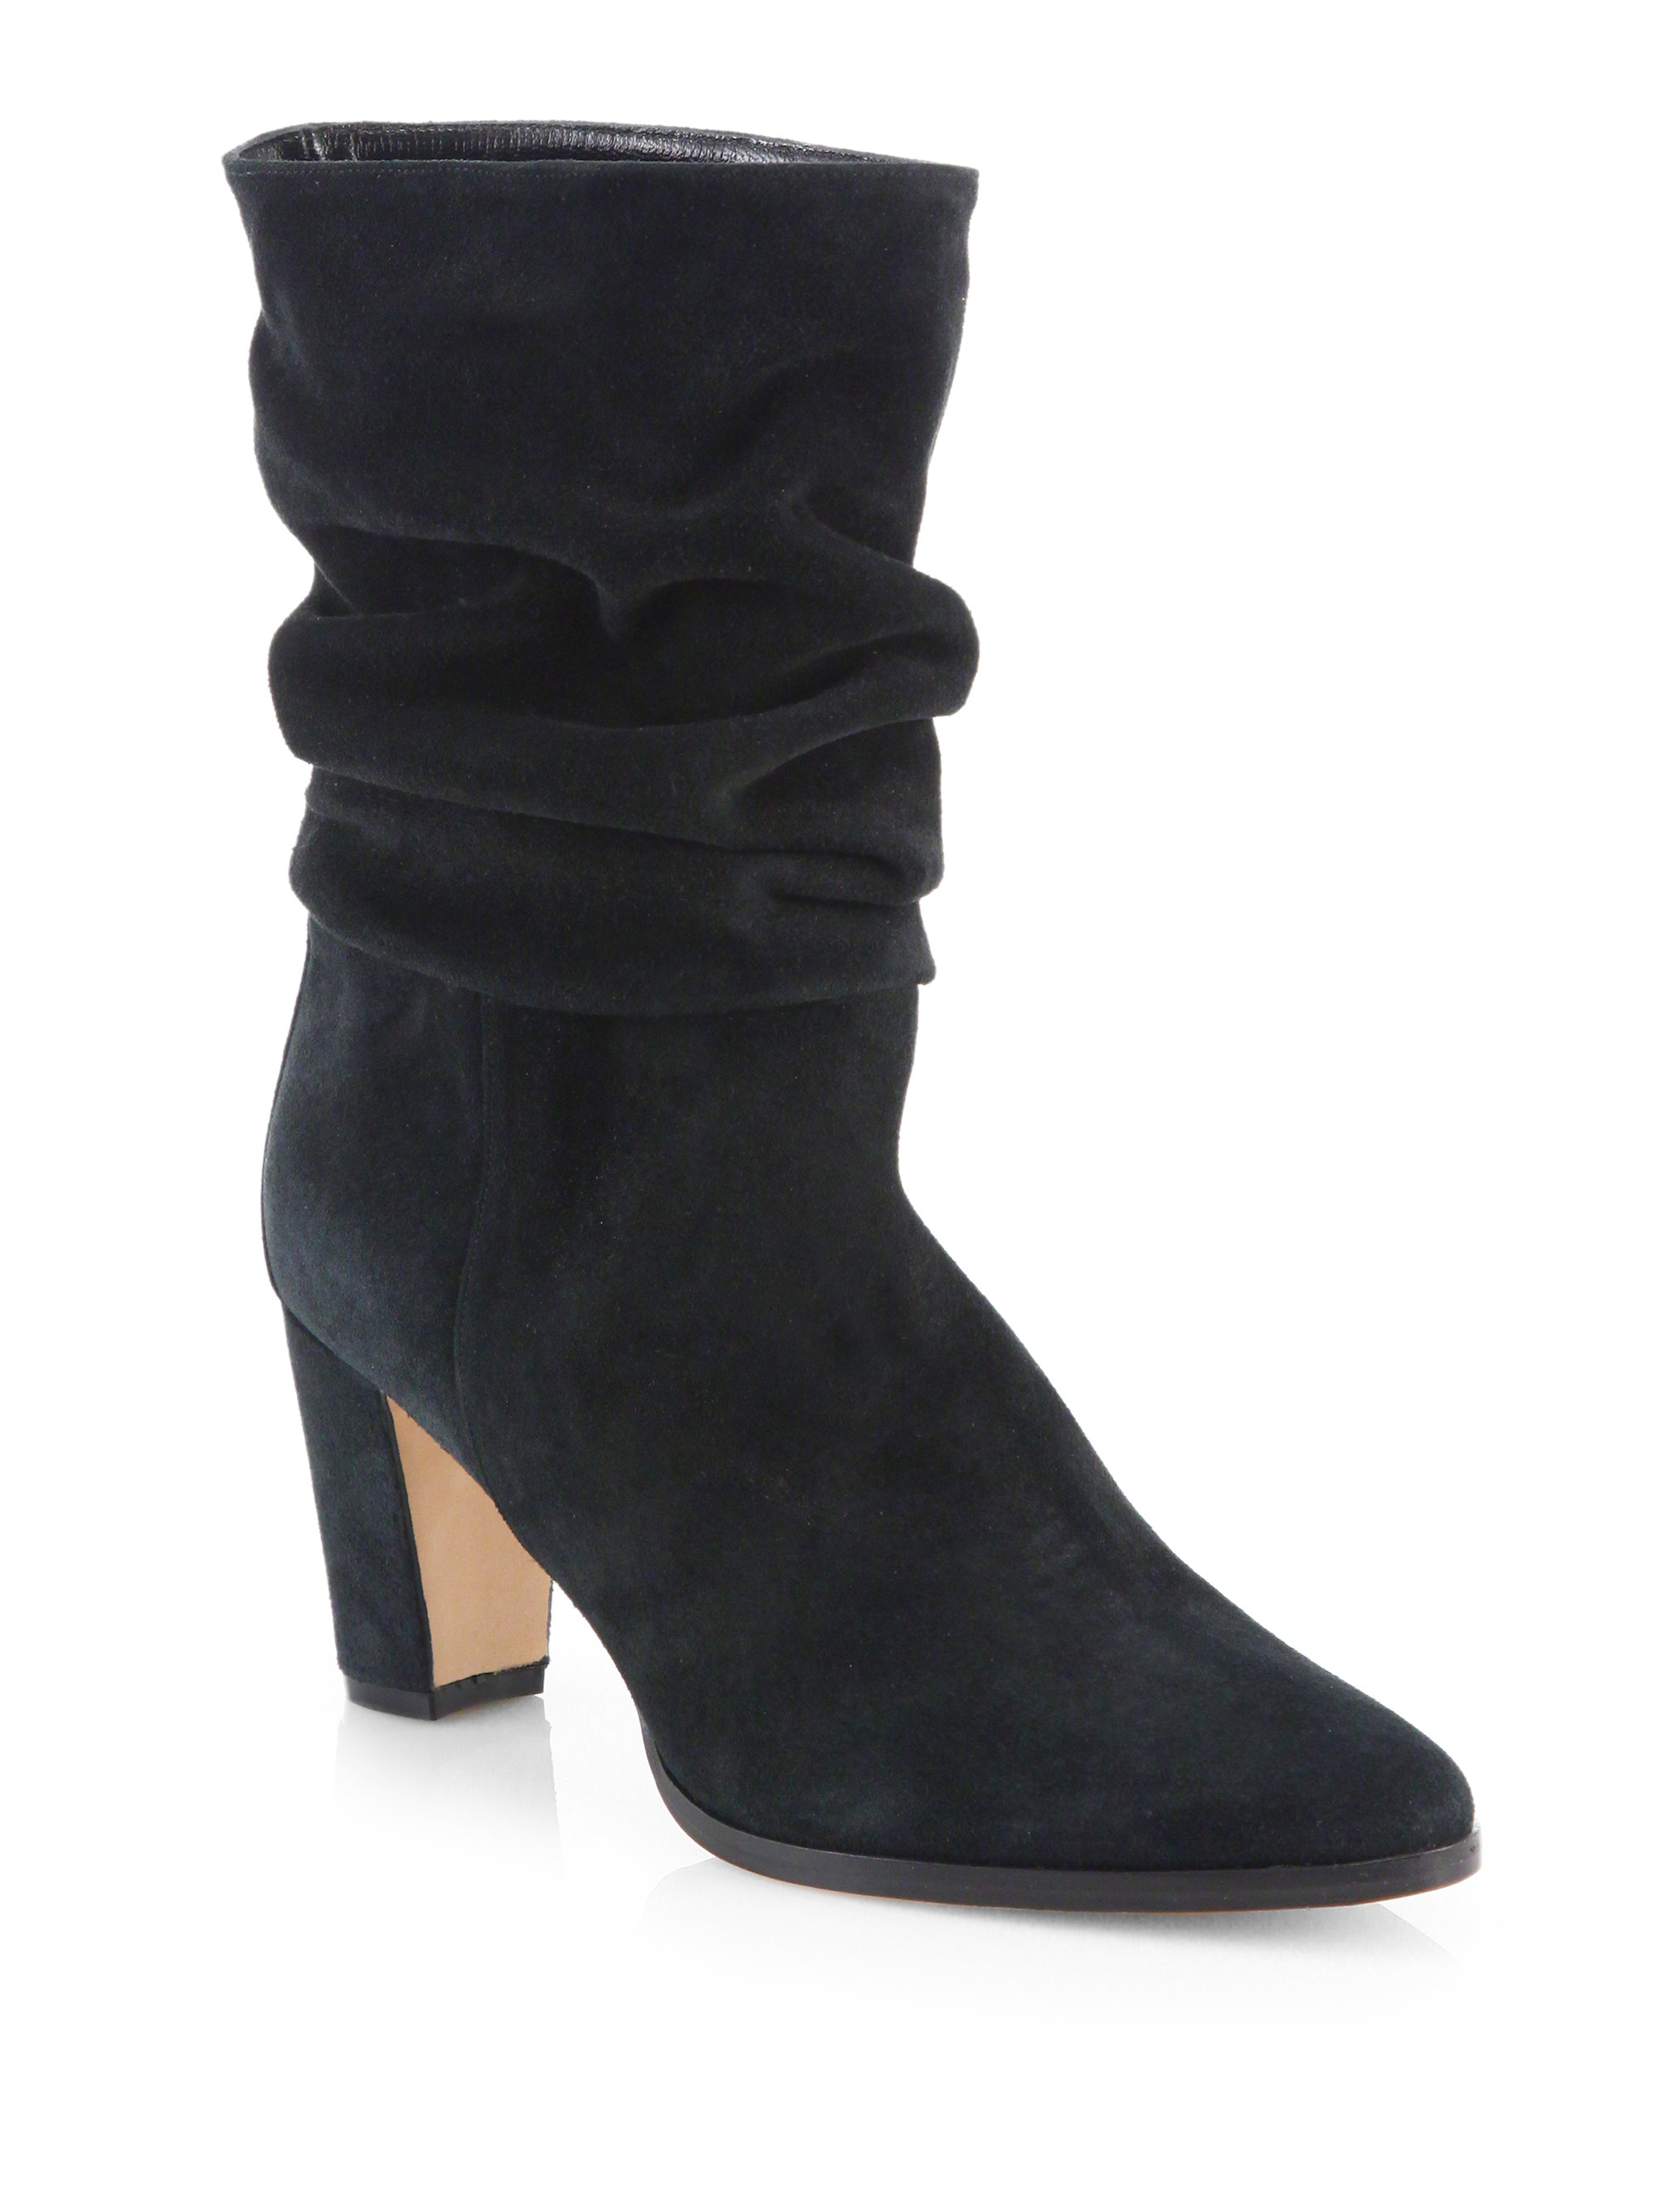 manolo blahnik slouchy suede midcalf boots in black